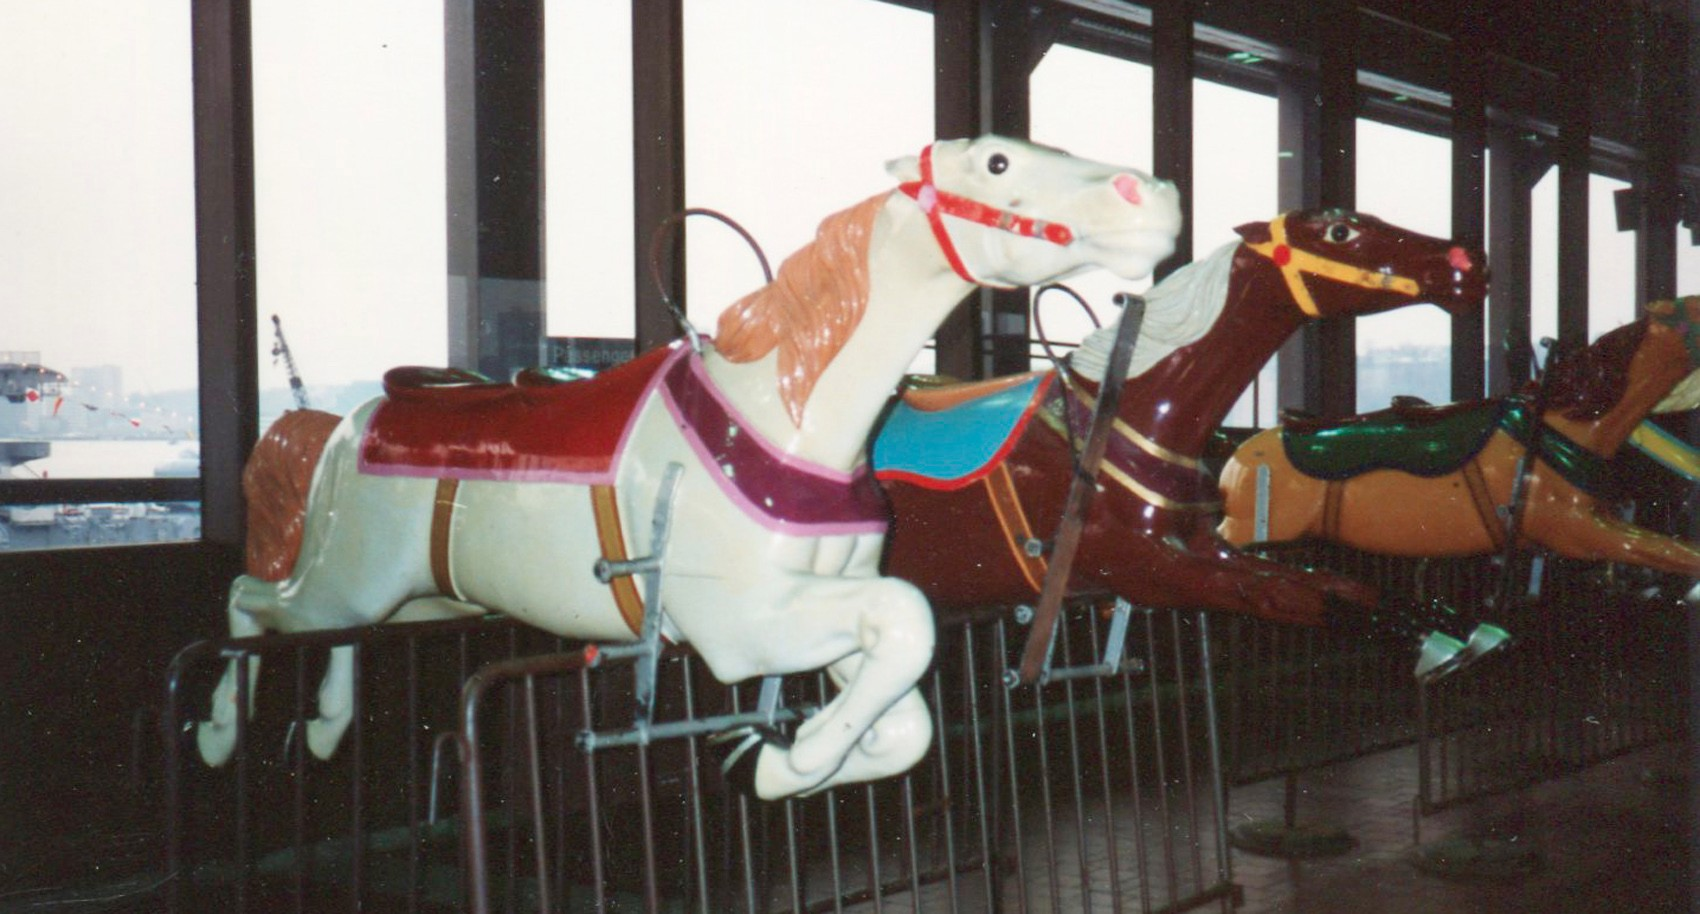 Prior-and-Church-derby-racer-horse-Guernsey-auction-1989